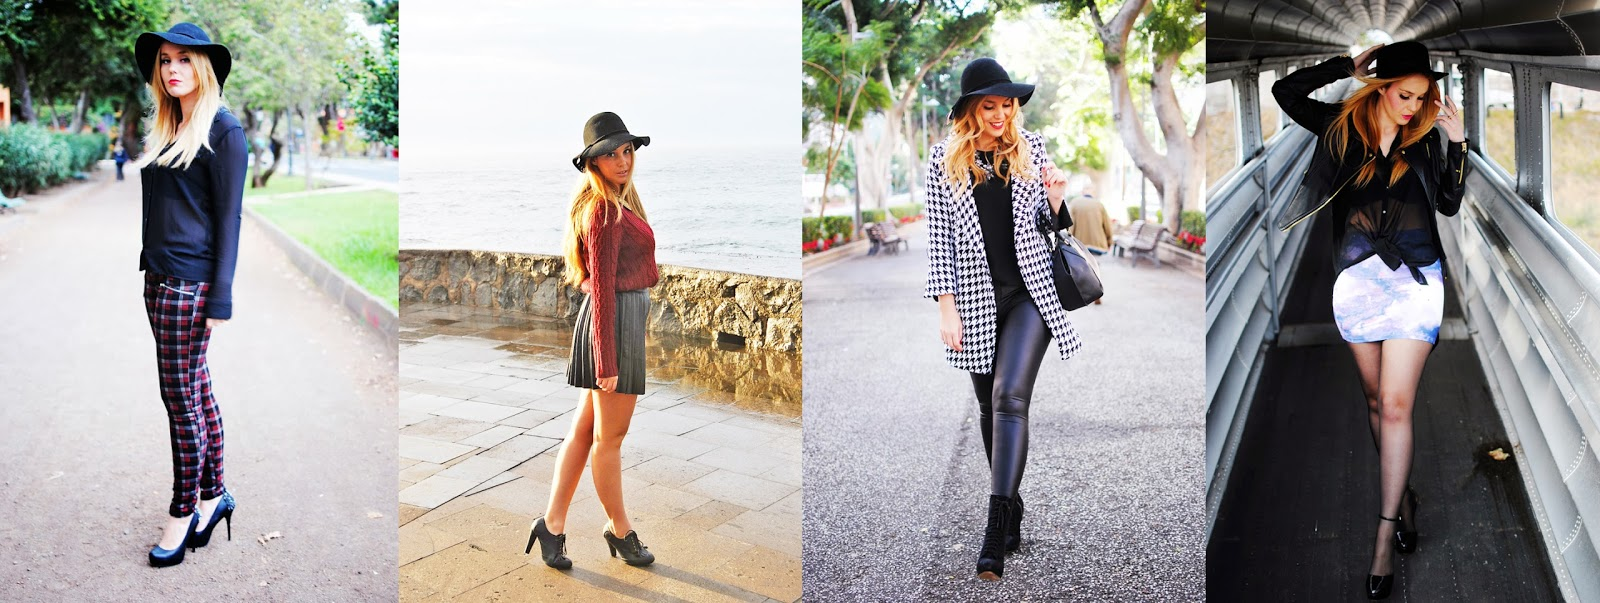 Nery hdez, hat, black hat, fashion blogger tenerife,